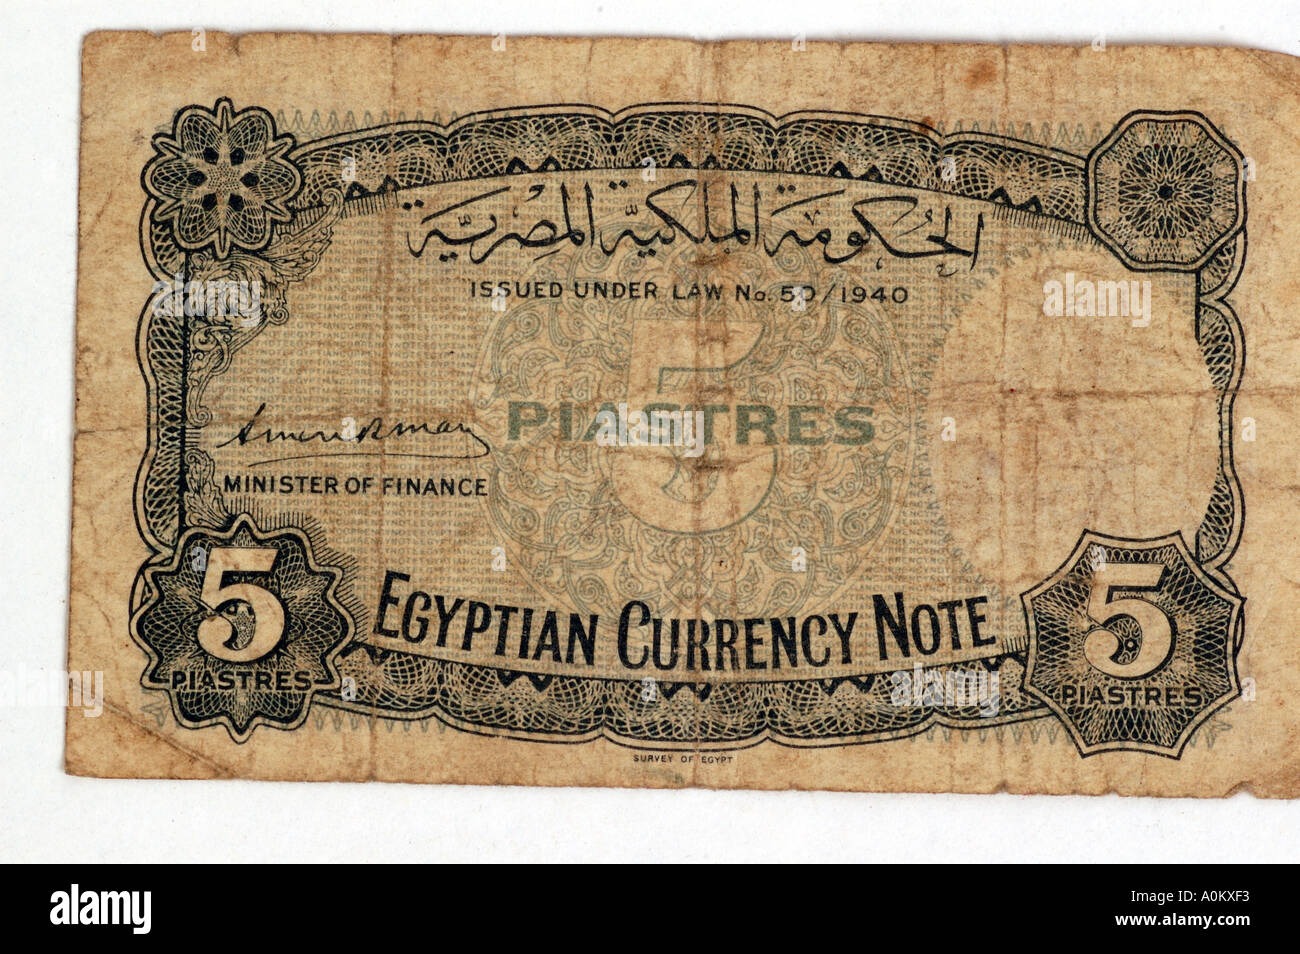 Old egyptian bank note currency stock photo 3272434 alamy old egyptian bank note currency biocorpaavc Images